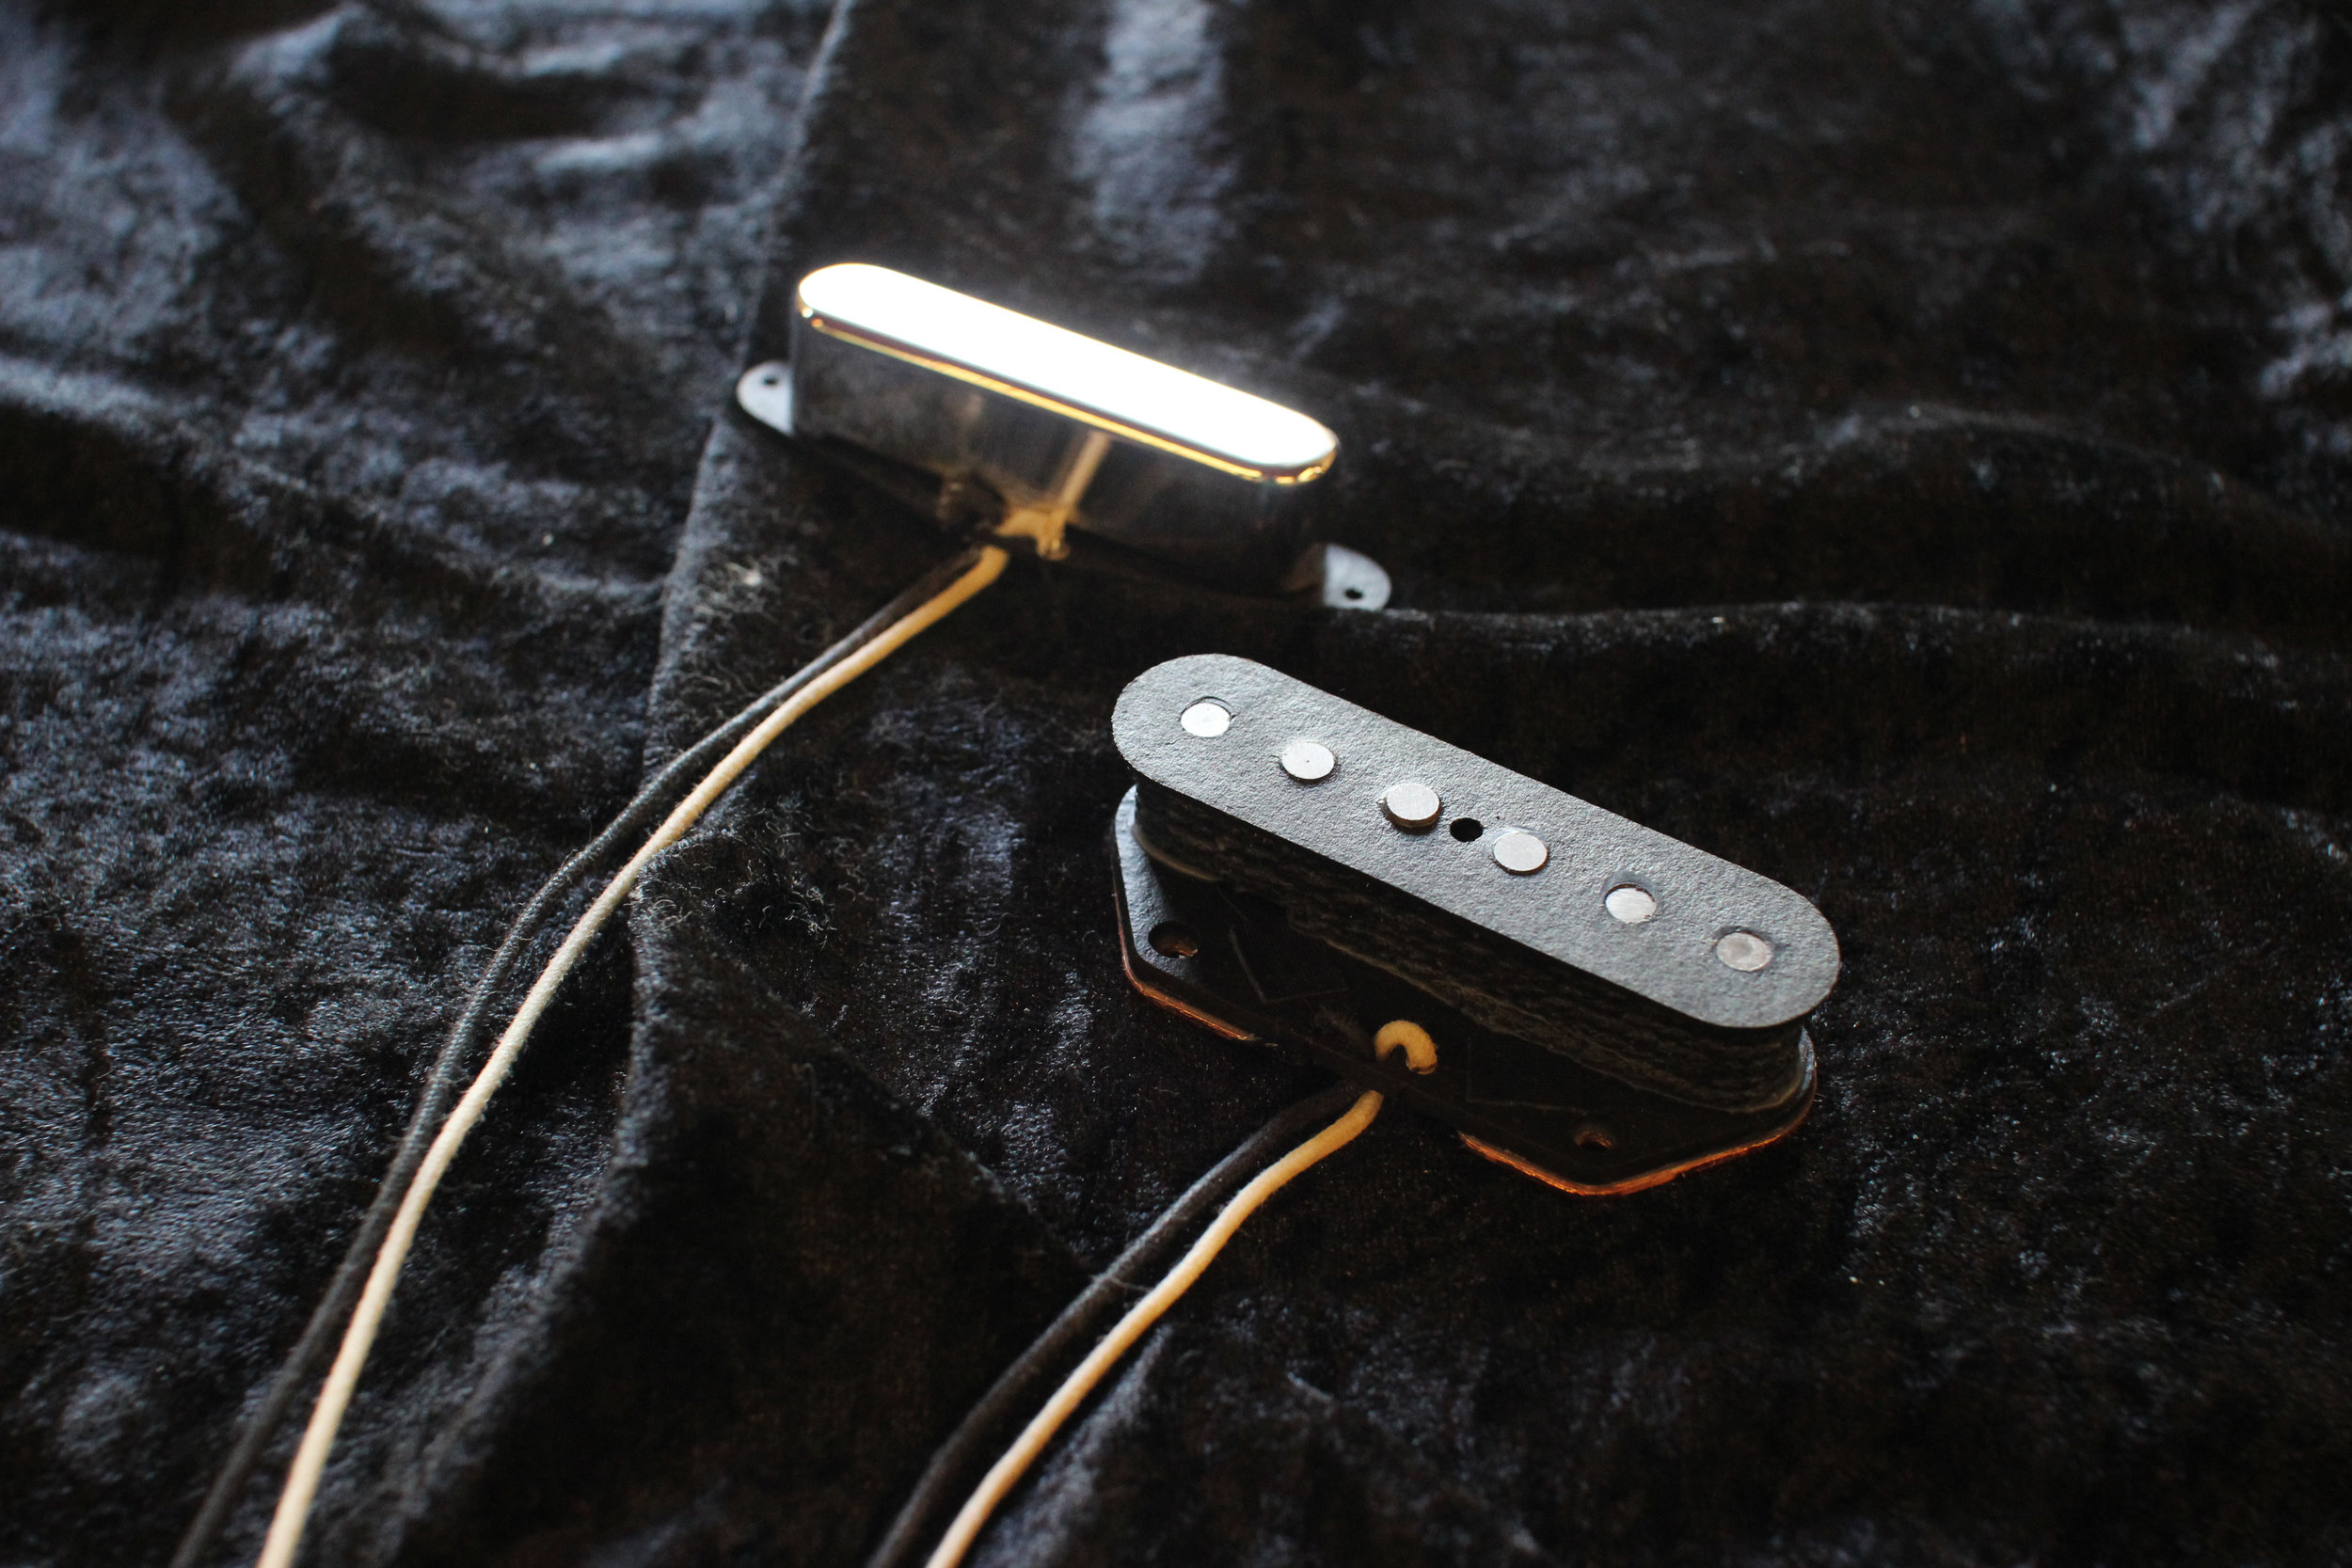 '54 Twang Man - Into the mid 50's and the pickups become a little more standardised. Staggered magnet and a cooler wind for that classic Twangy Tele Tone.